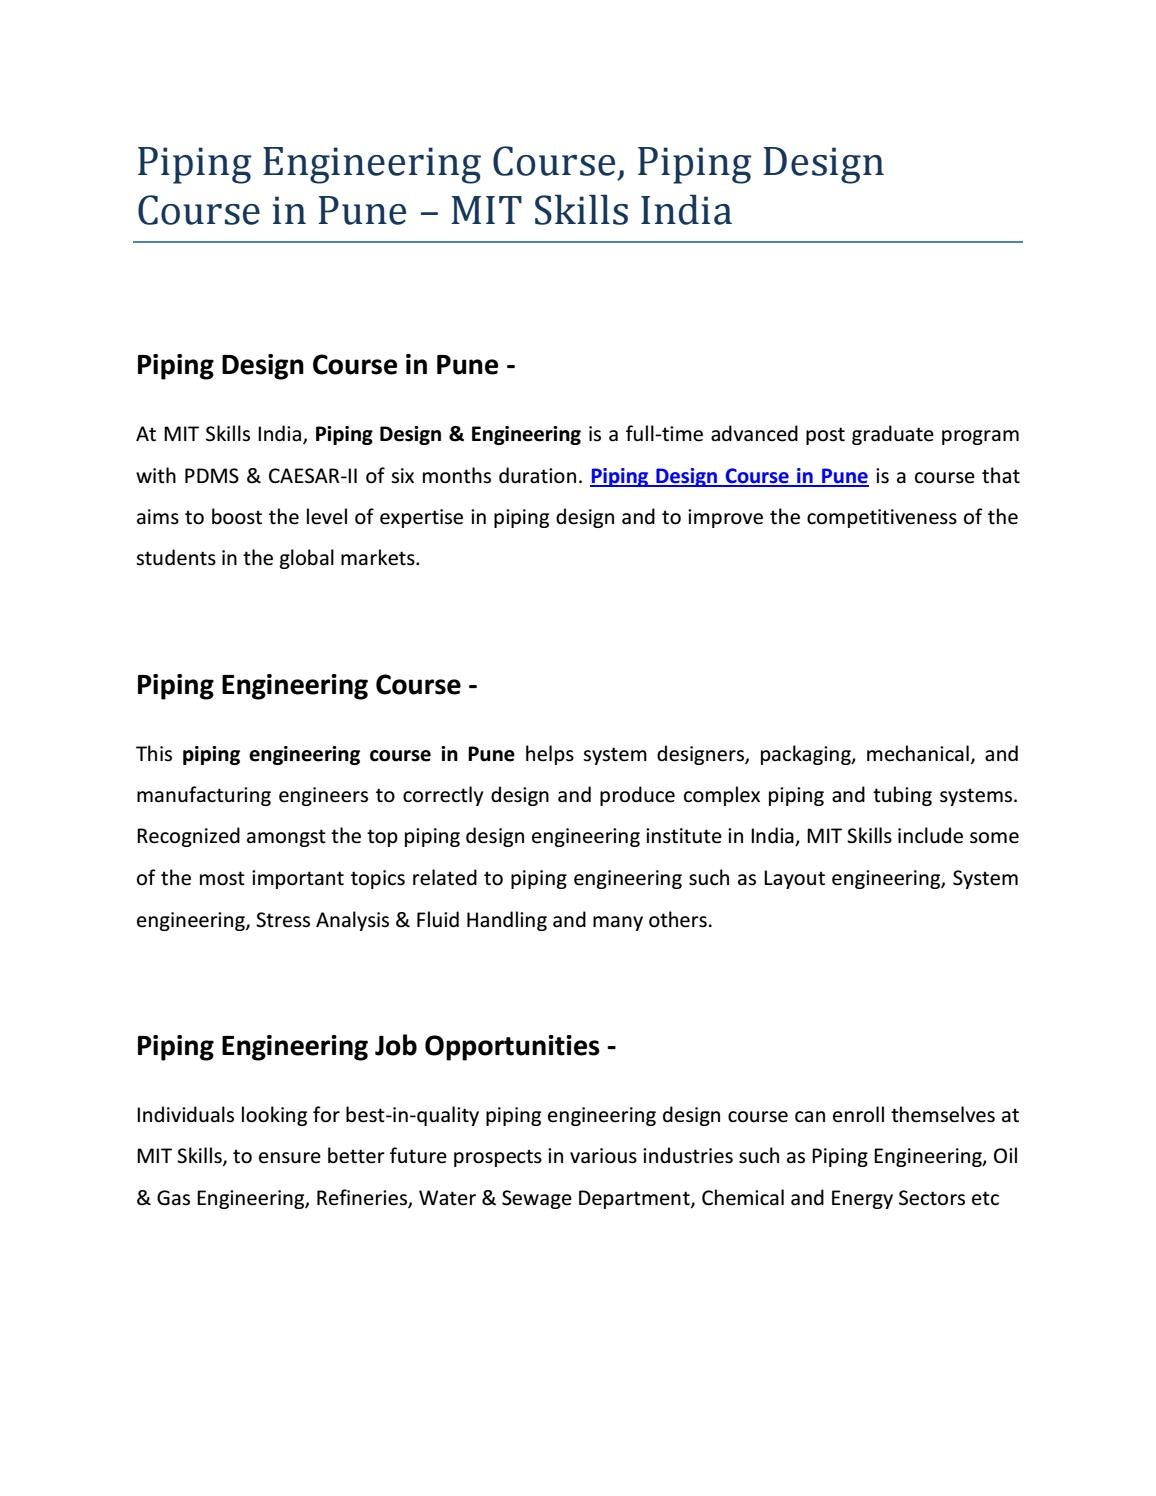 Piping Layout Engineer Job Description Wiring Library Engineering Course Design In Pune Mit Skills India By